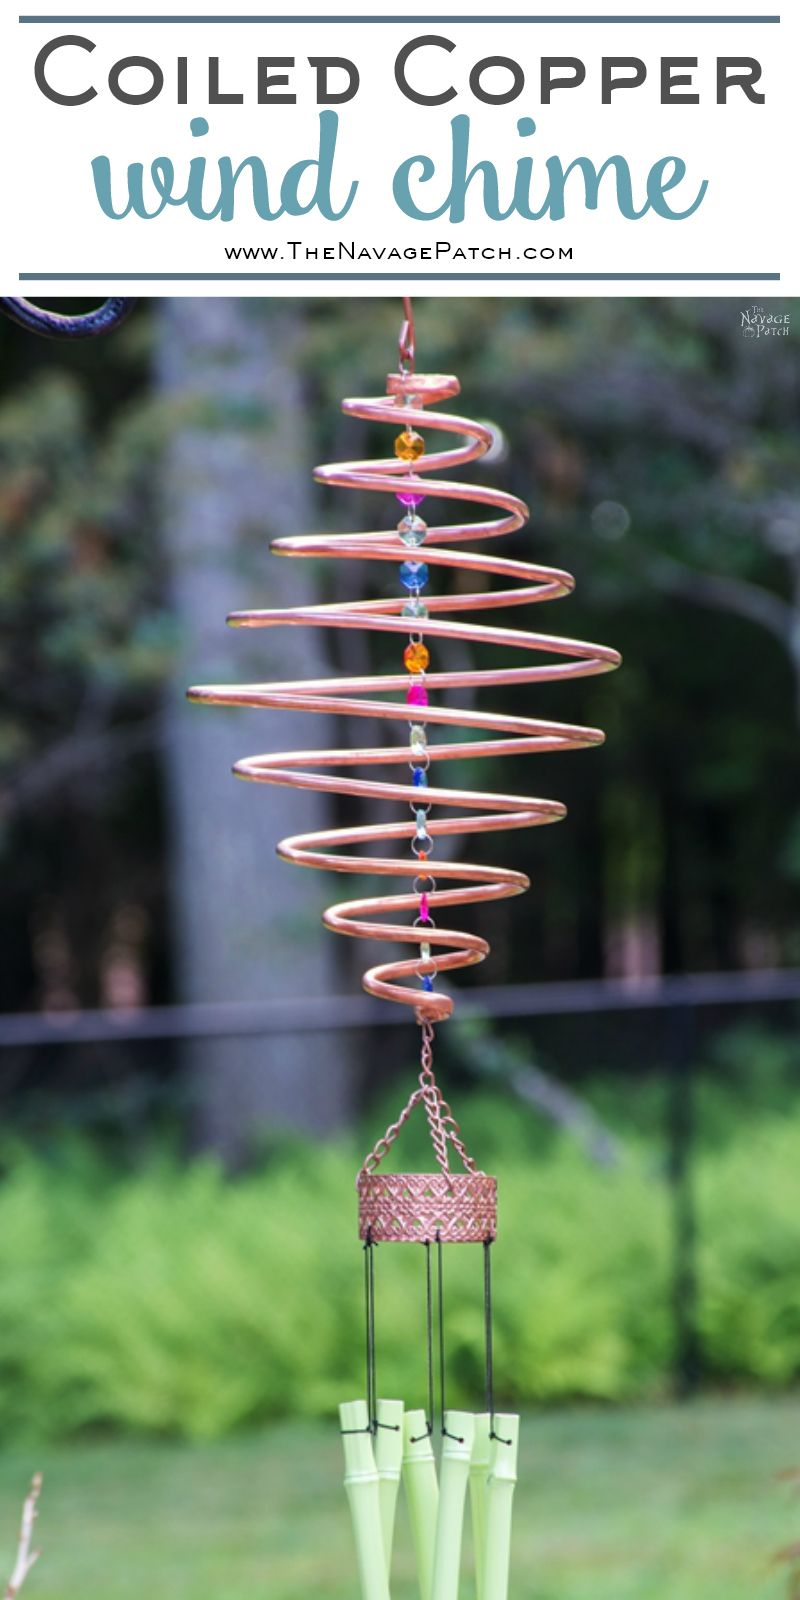 Coiled Copper Wind Chimes The Navage Patch